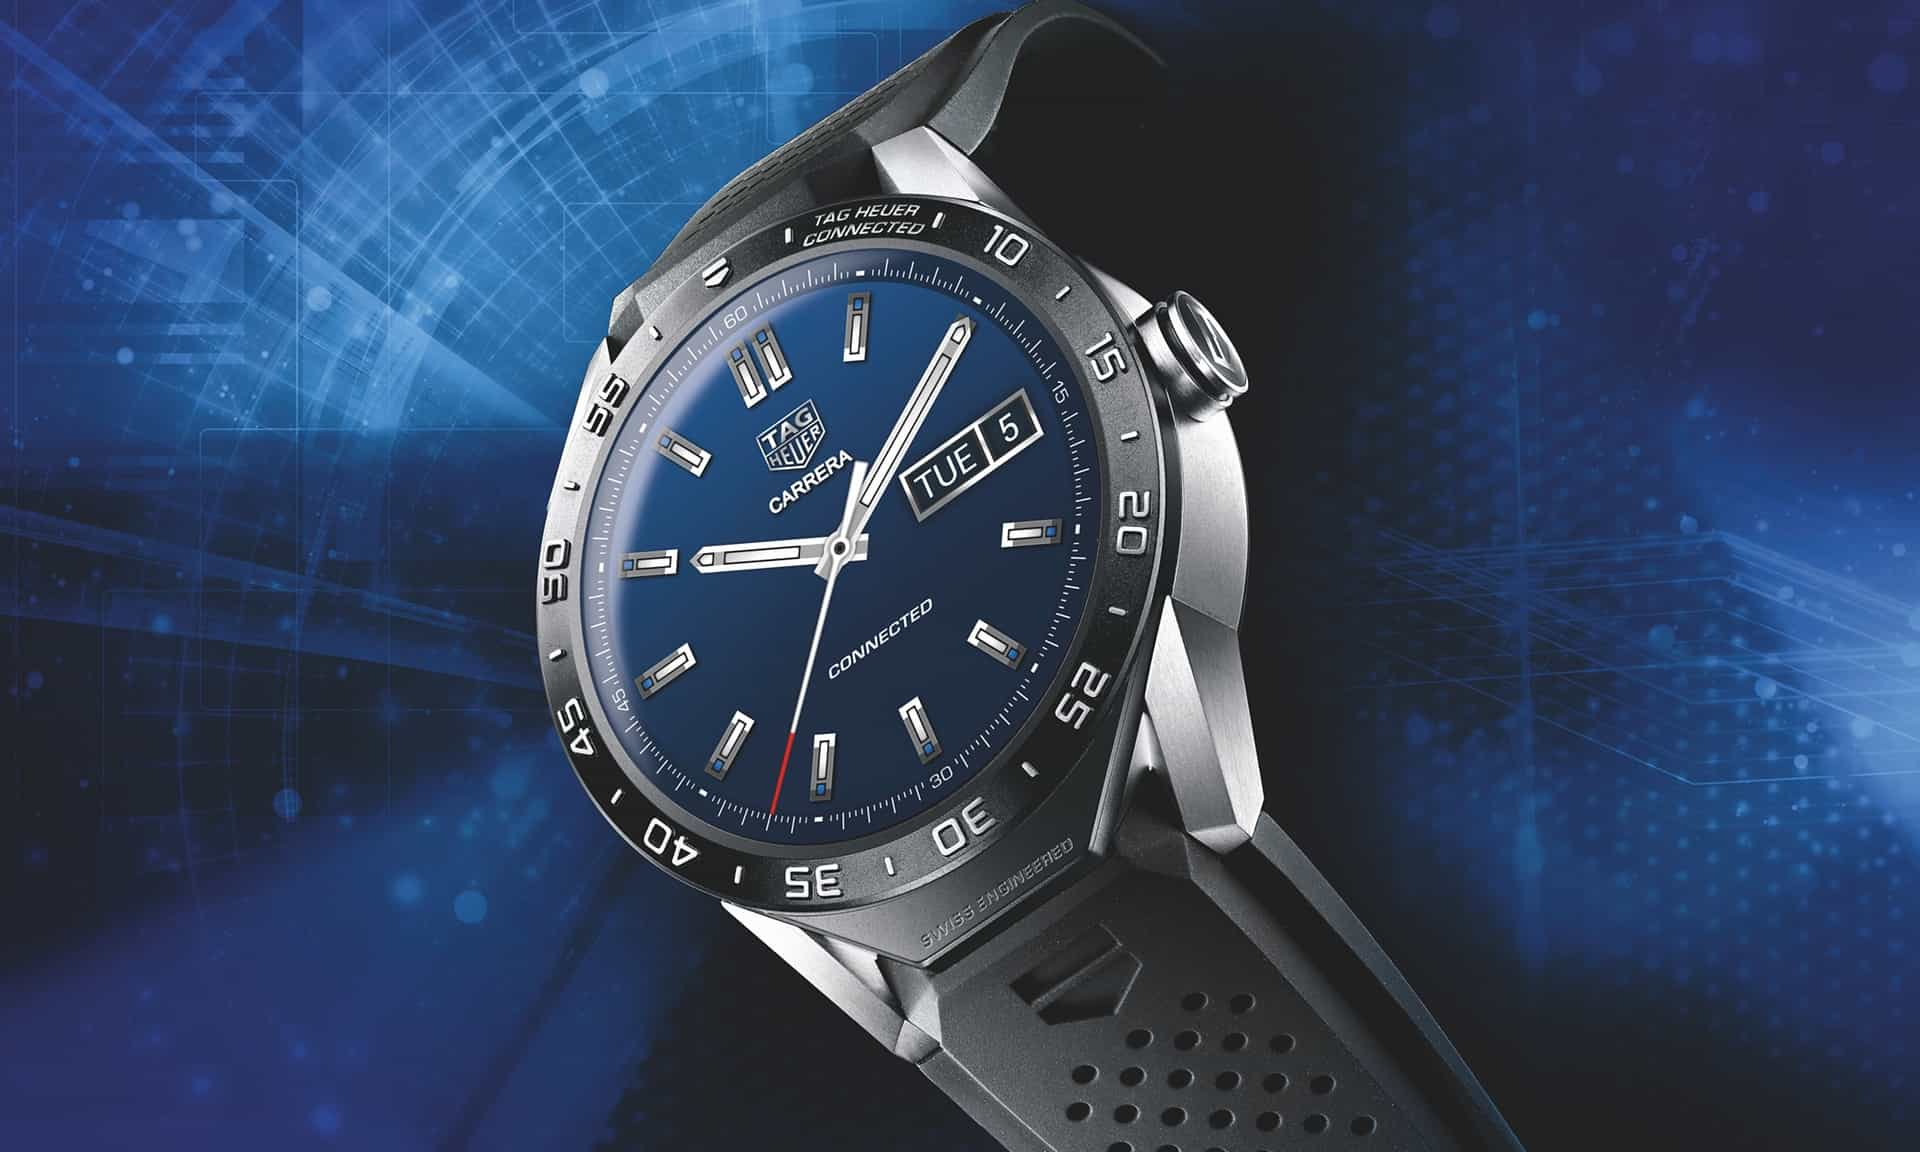 TAG Heuer tests pricing bounds of Android Wear